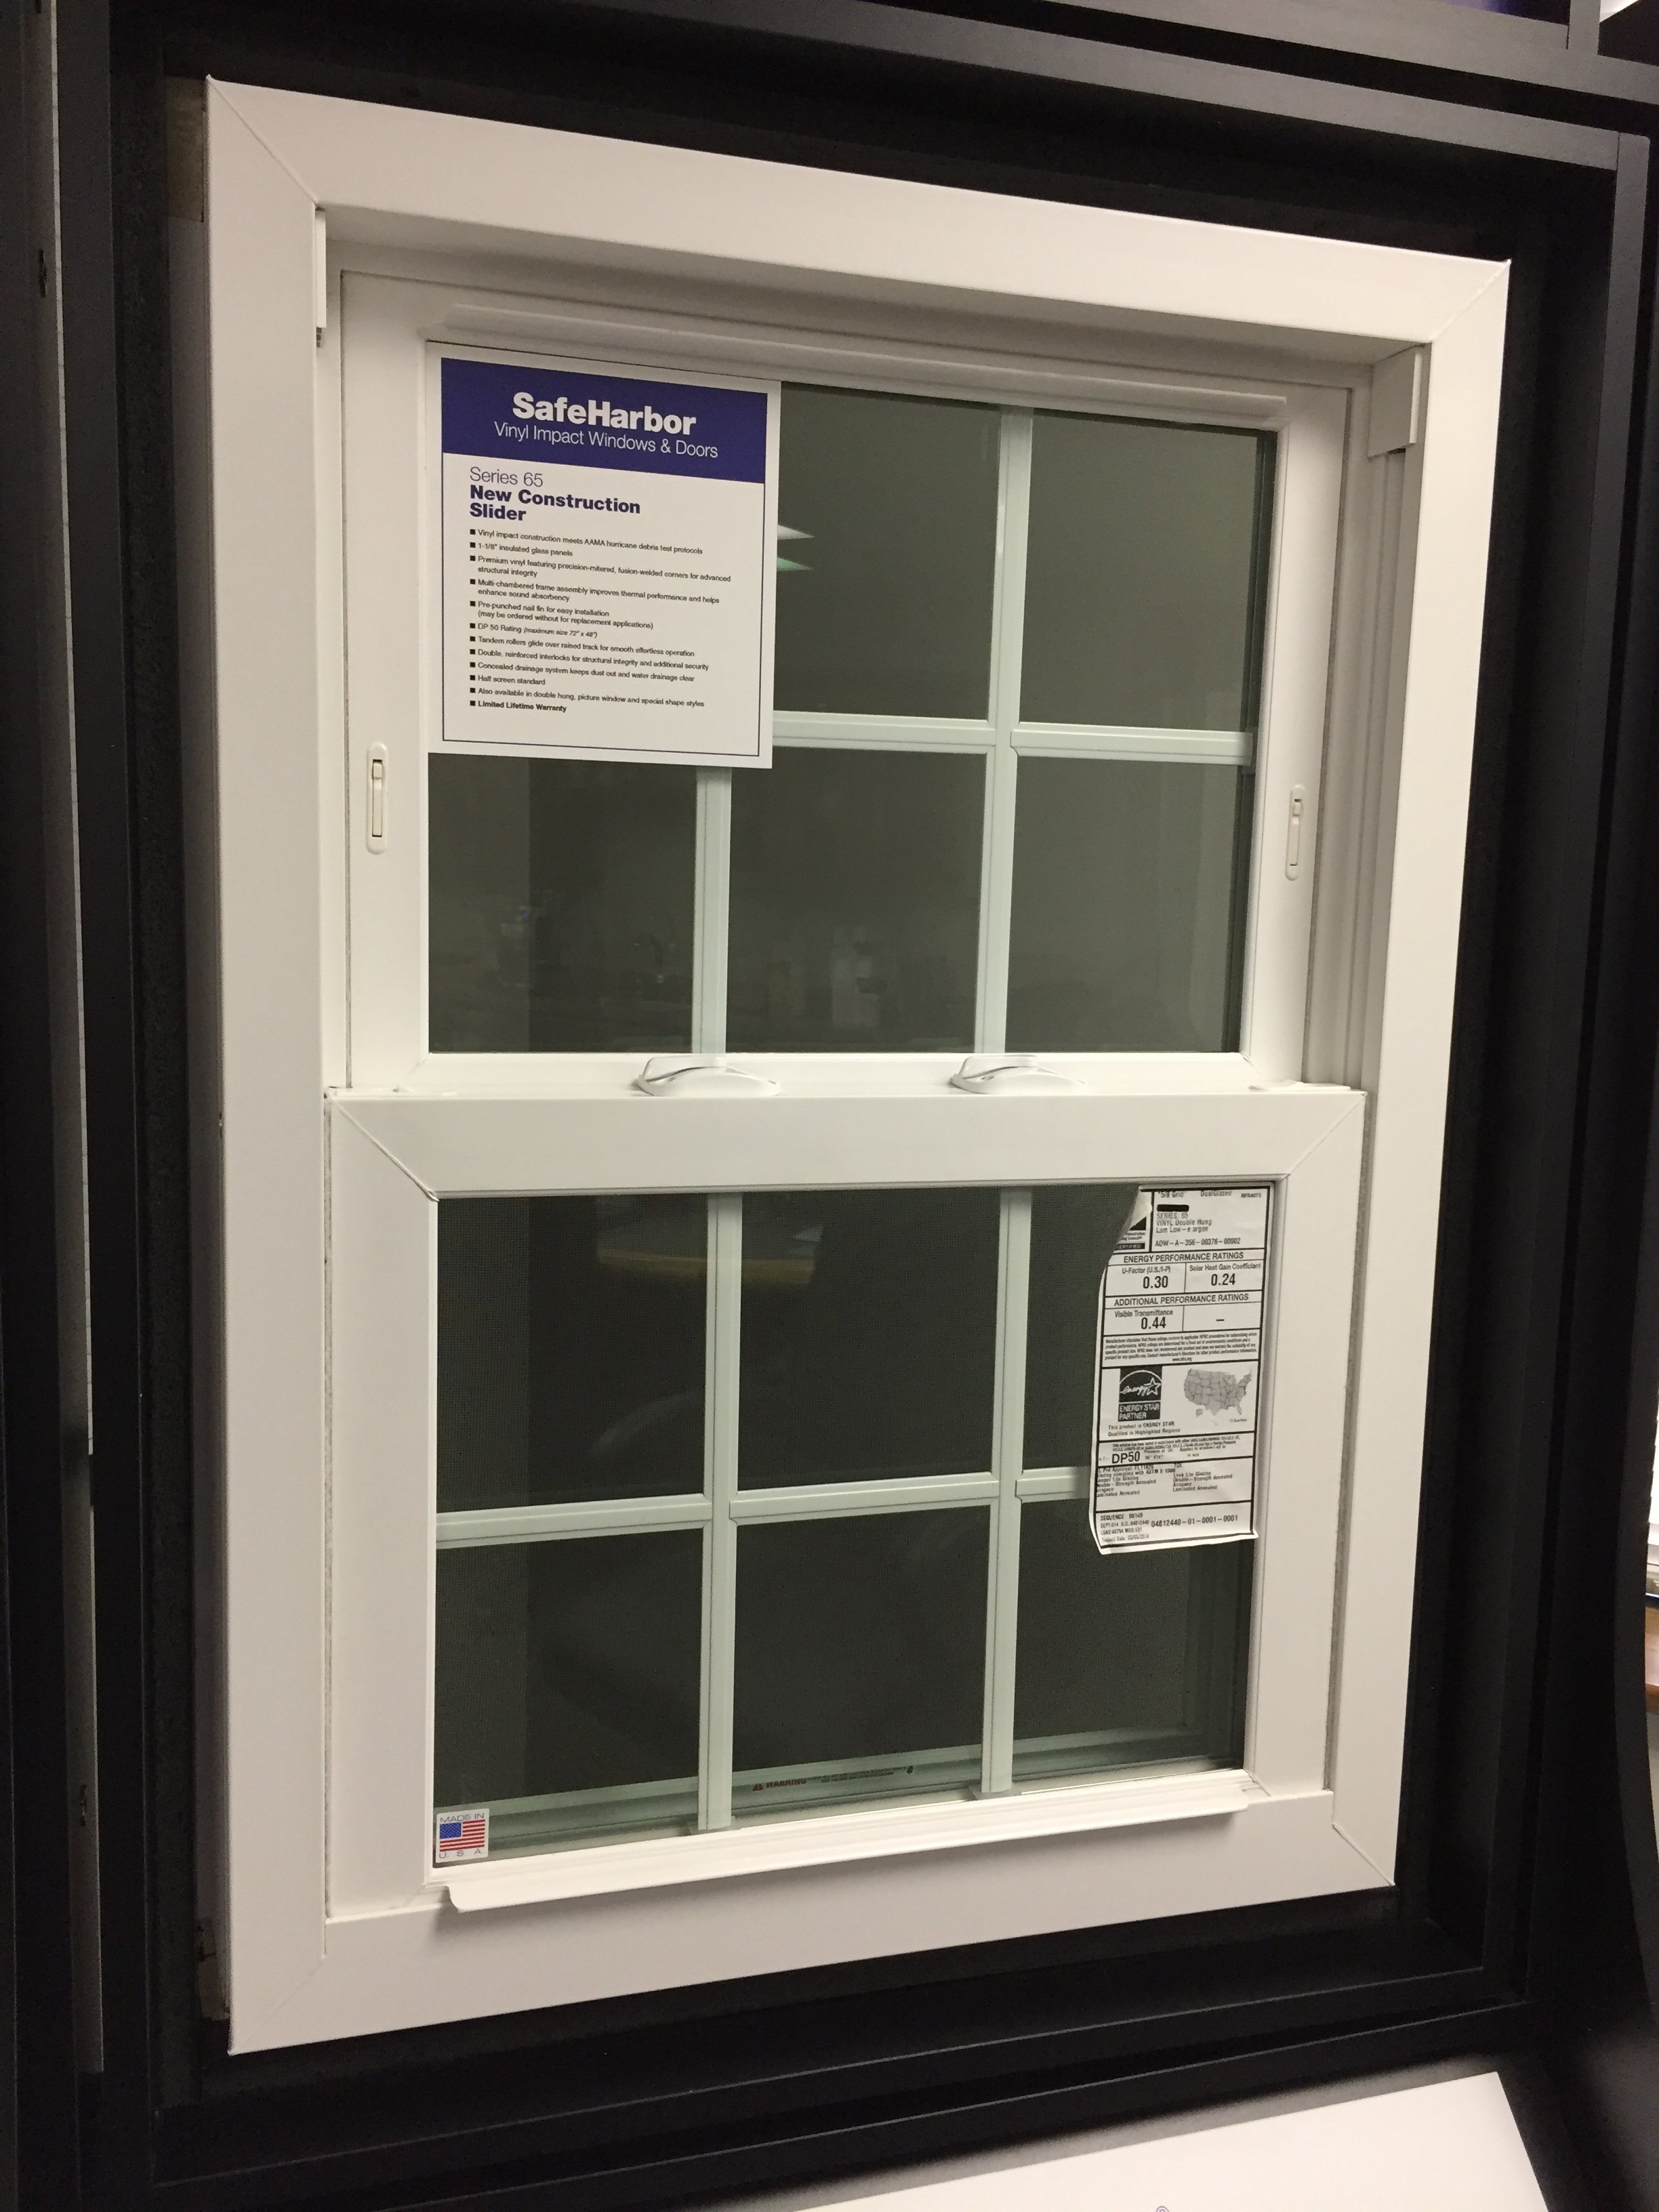 Atrium recalls safeharbor windows due to impact injury for Atrium windows